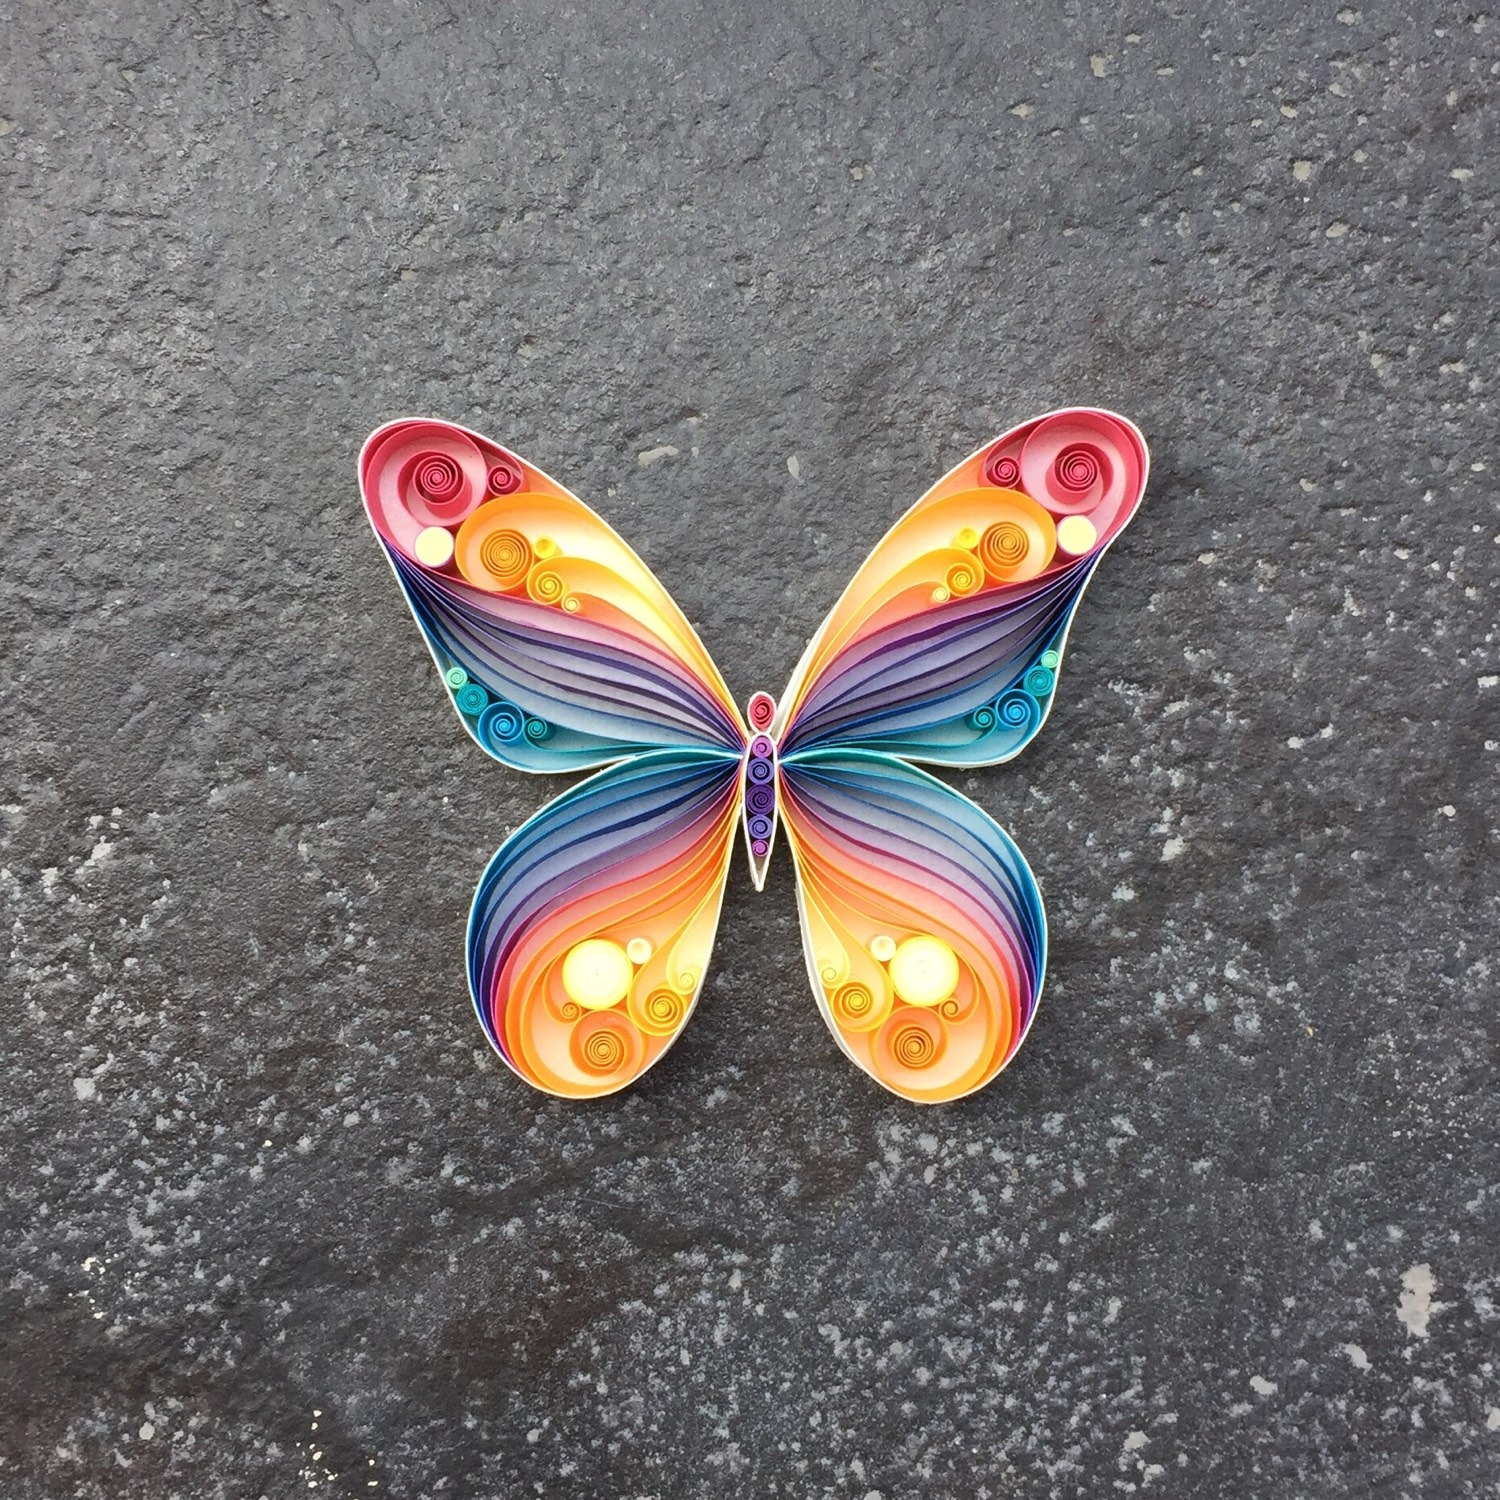 15-Butterfly-Sena-Runa-Beautiful-Designs-Accomplished-with-Paper-Quilling-Art-www-designstack-co